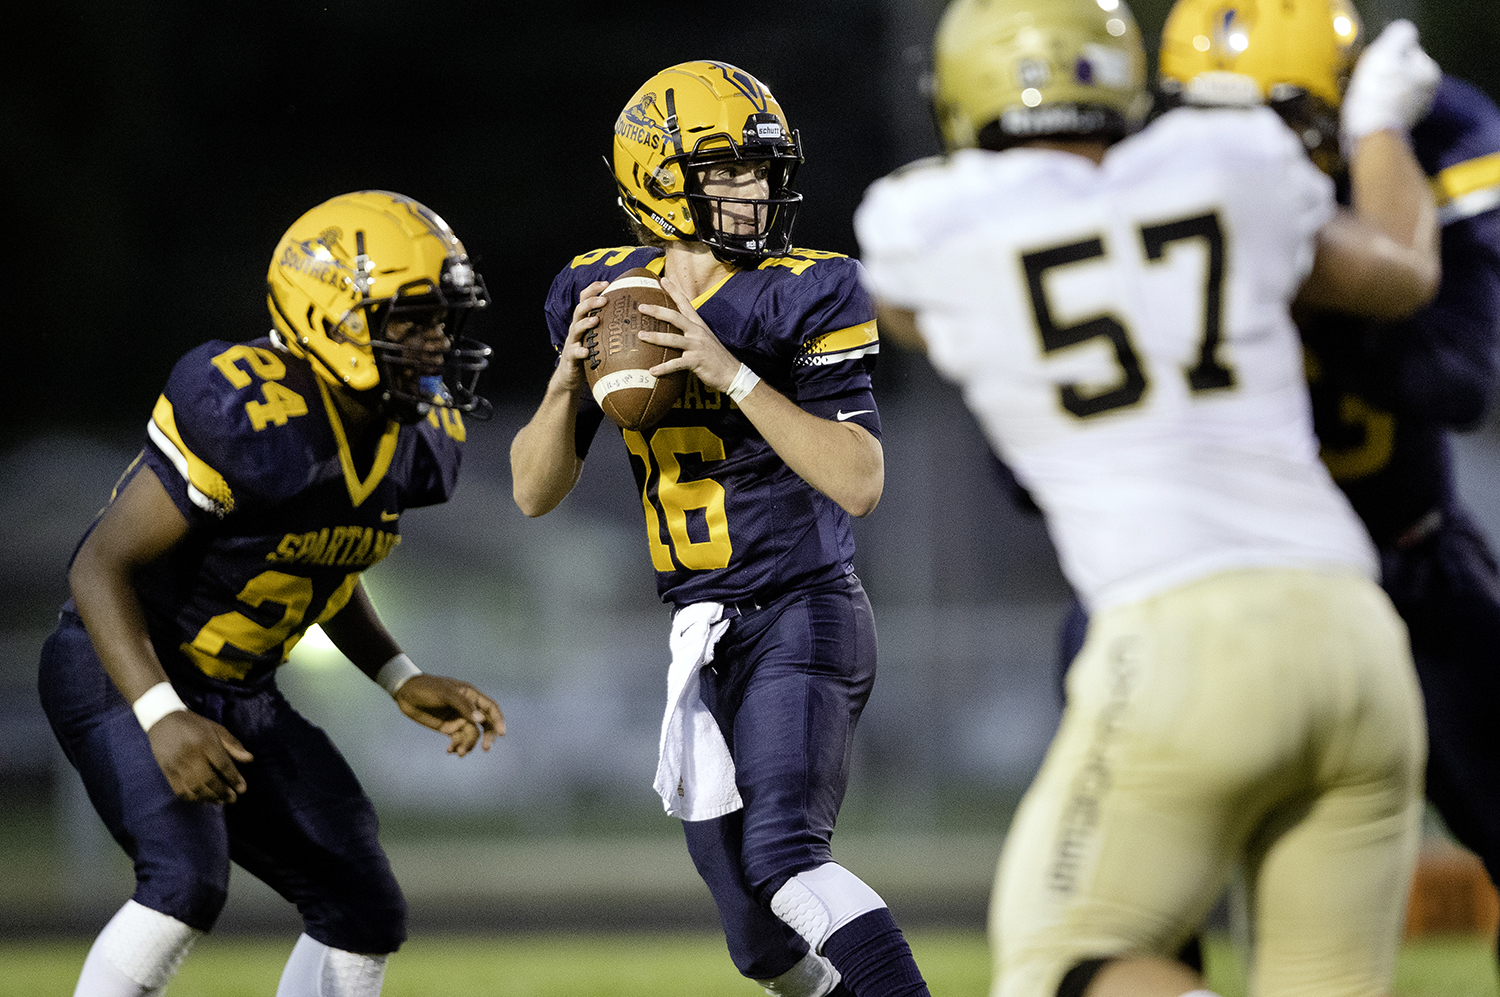 Southeast quarterback Stuart Ross drops back for a pass against Sacred Heart-Griffin at Southeast High School Friday, Sept. 14, 2018. [Ted Schurter/The State Journal-Register]